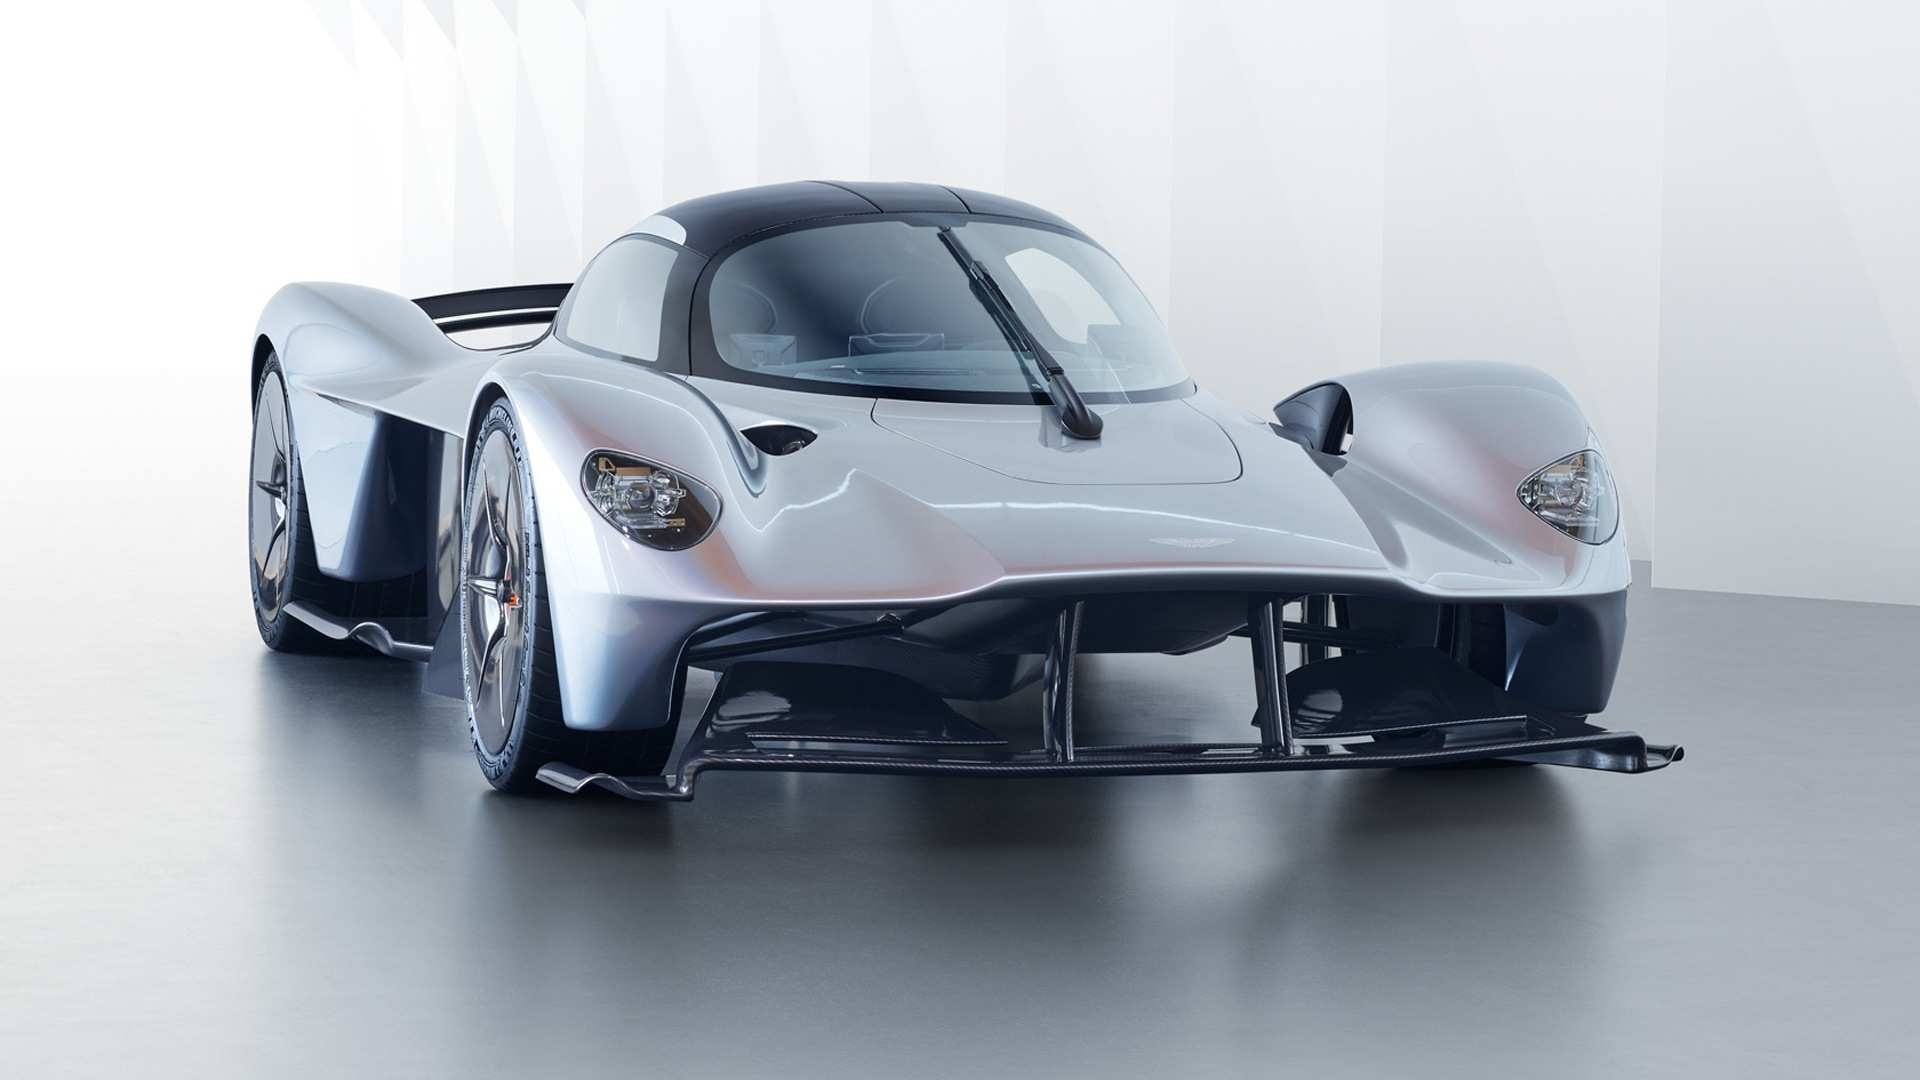 97 The Best 2020 Aston Martin Valkyrie Exterior And Interior